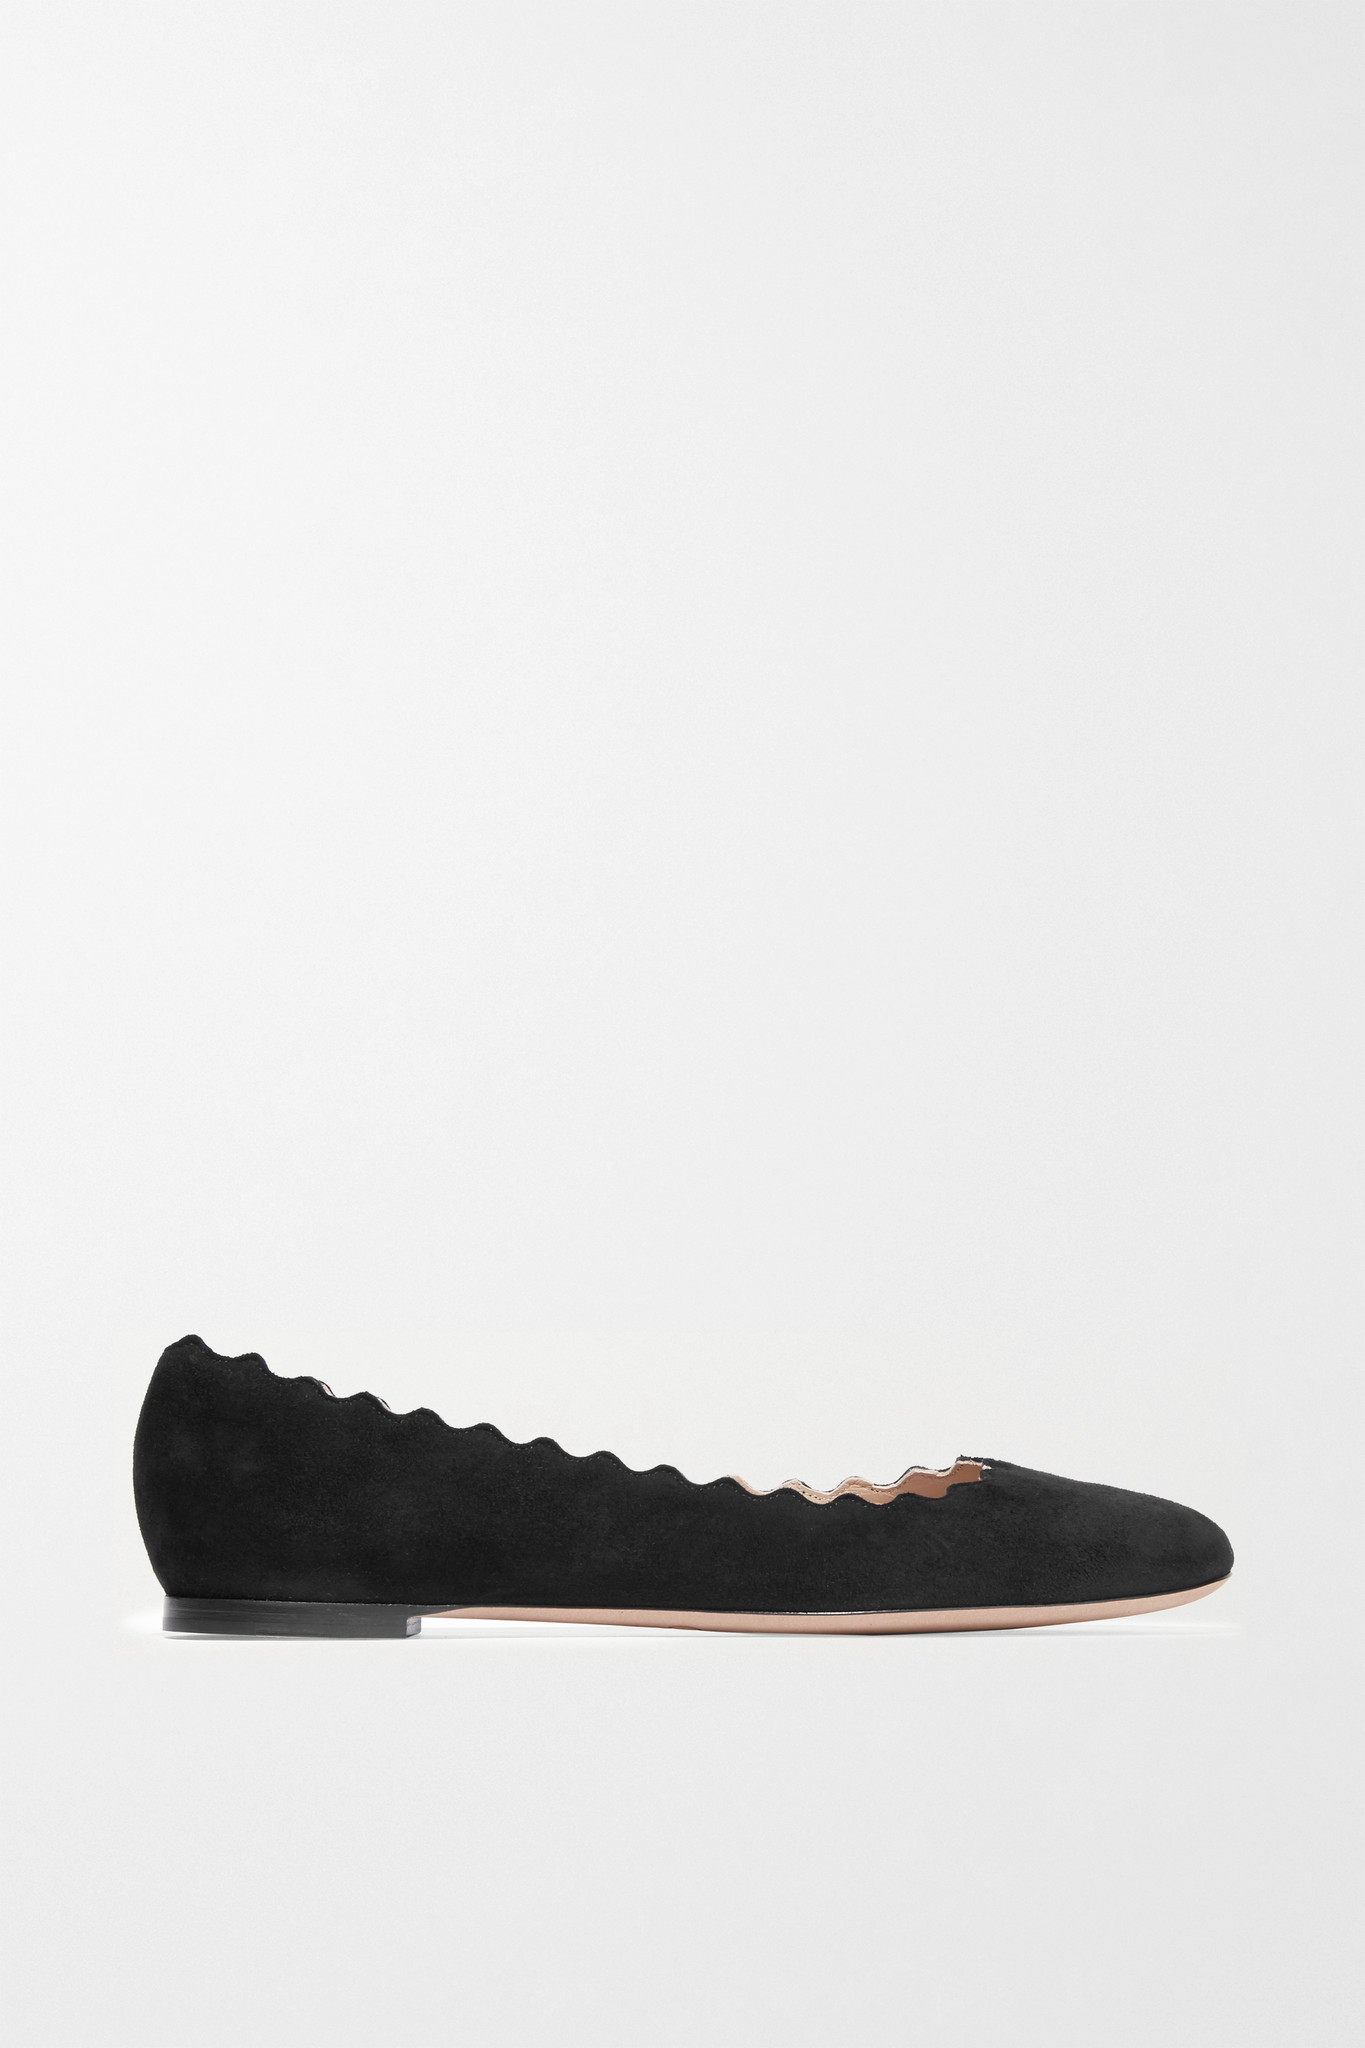 CHLOÉ - Lauren Scalloped Suede Ballet Flats - Black - IT40.5